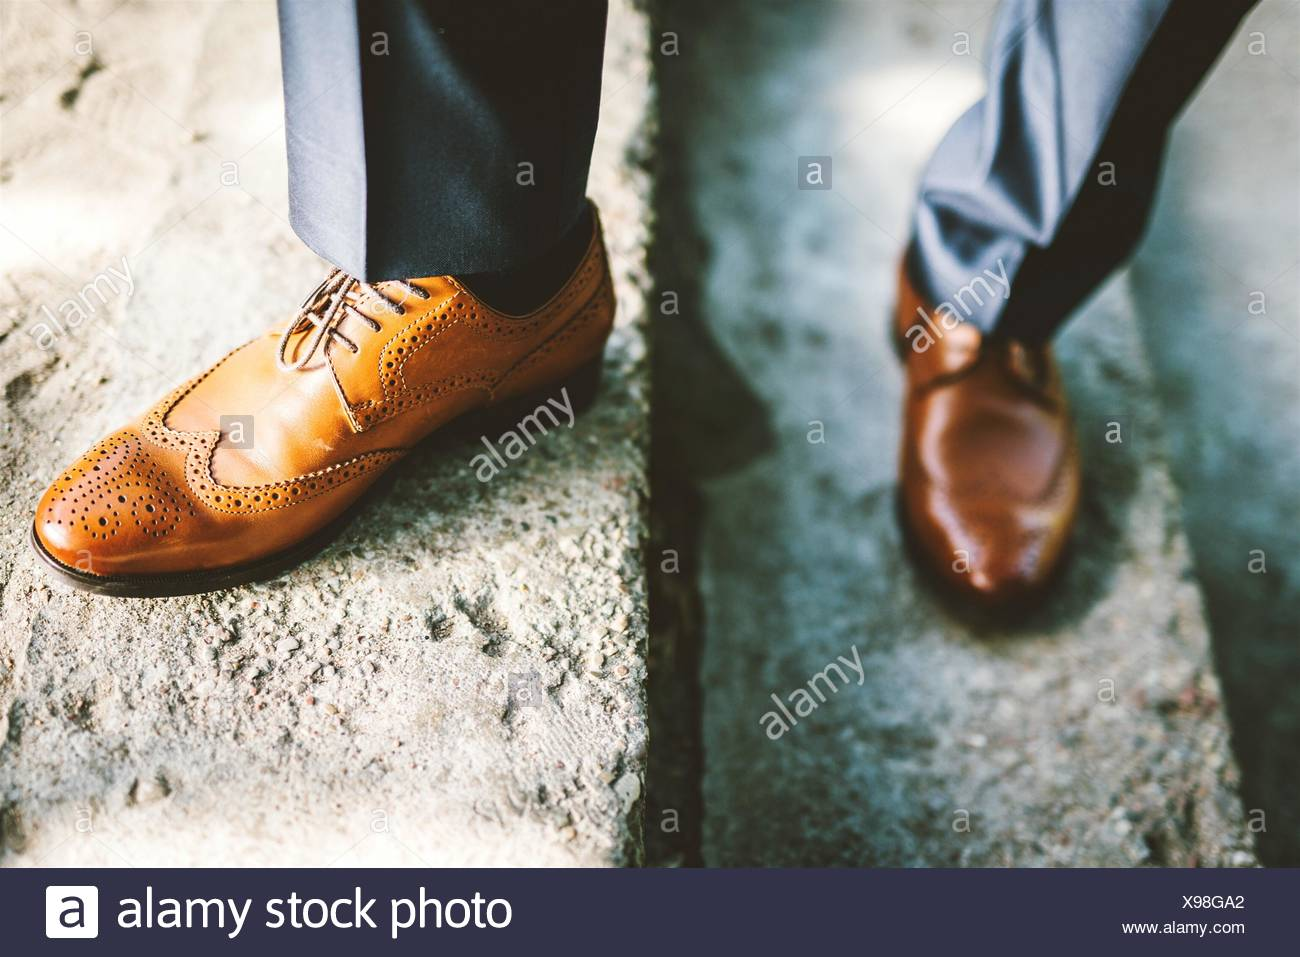 Low Section Of Man With Brogue Shoes Standing On Steps - Stock Image